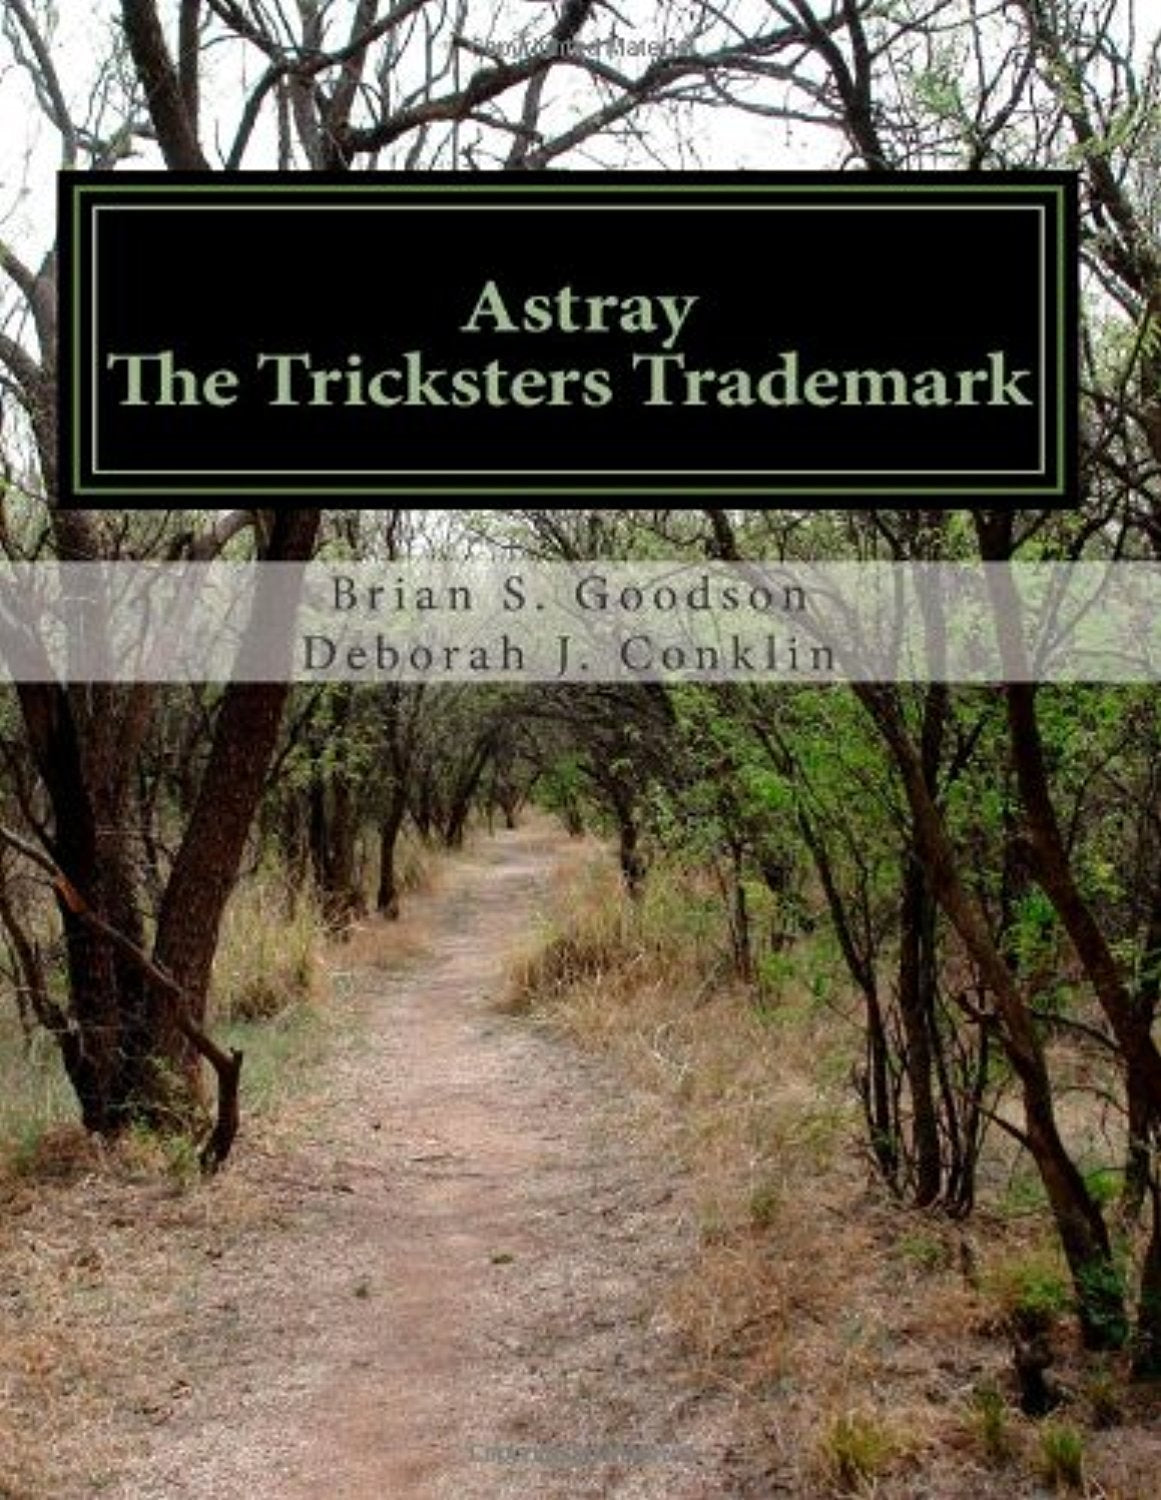 Astray: The Tricksters Trademark